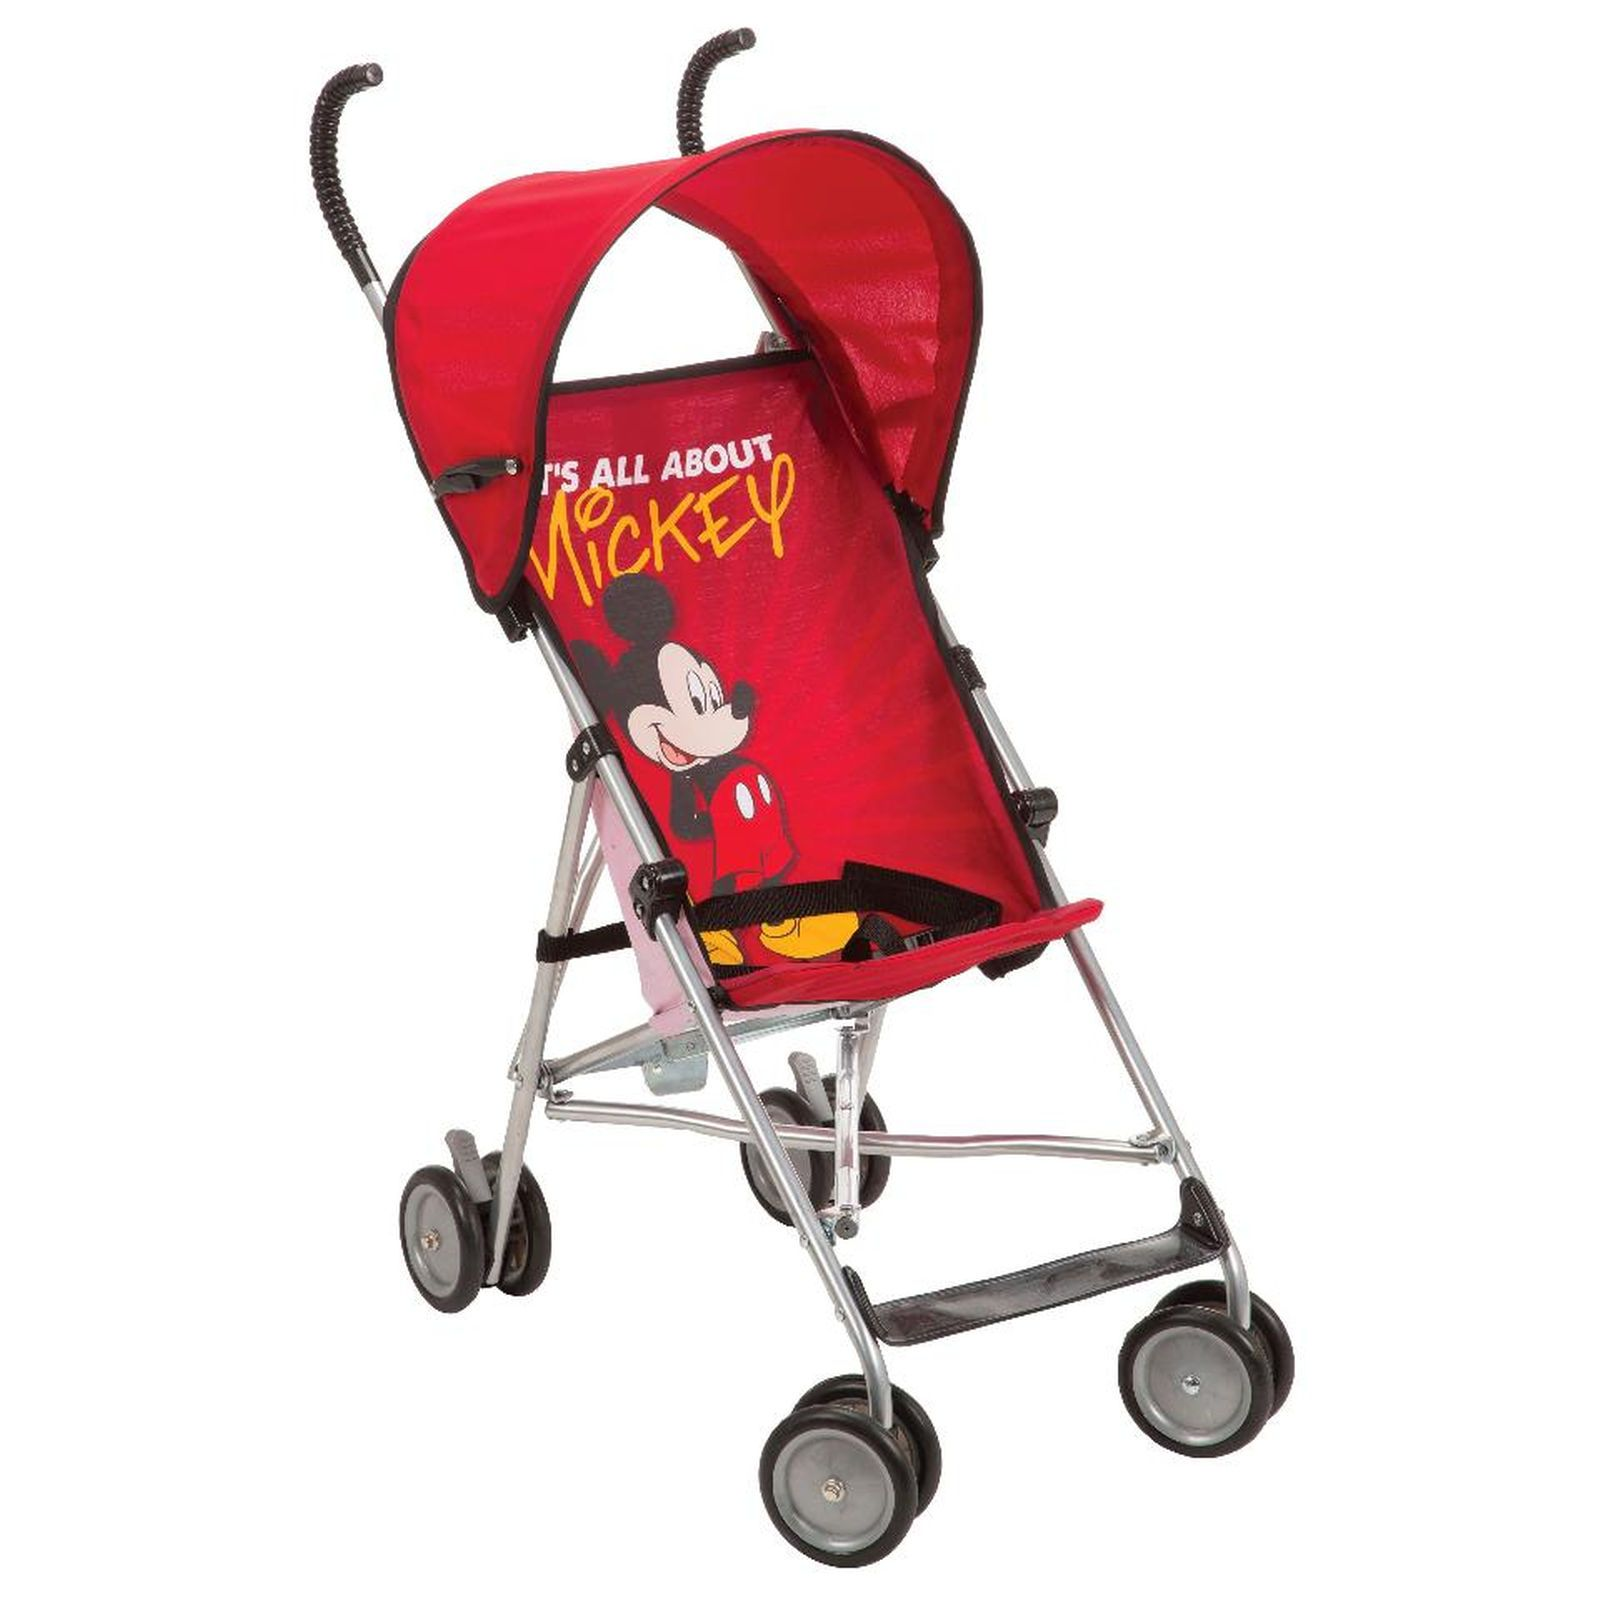 My baby needs something more compact. Umbrella stroller